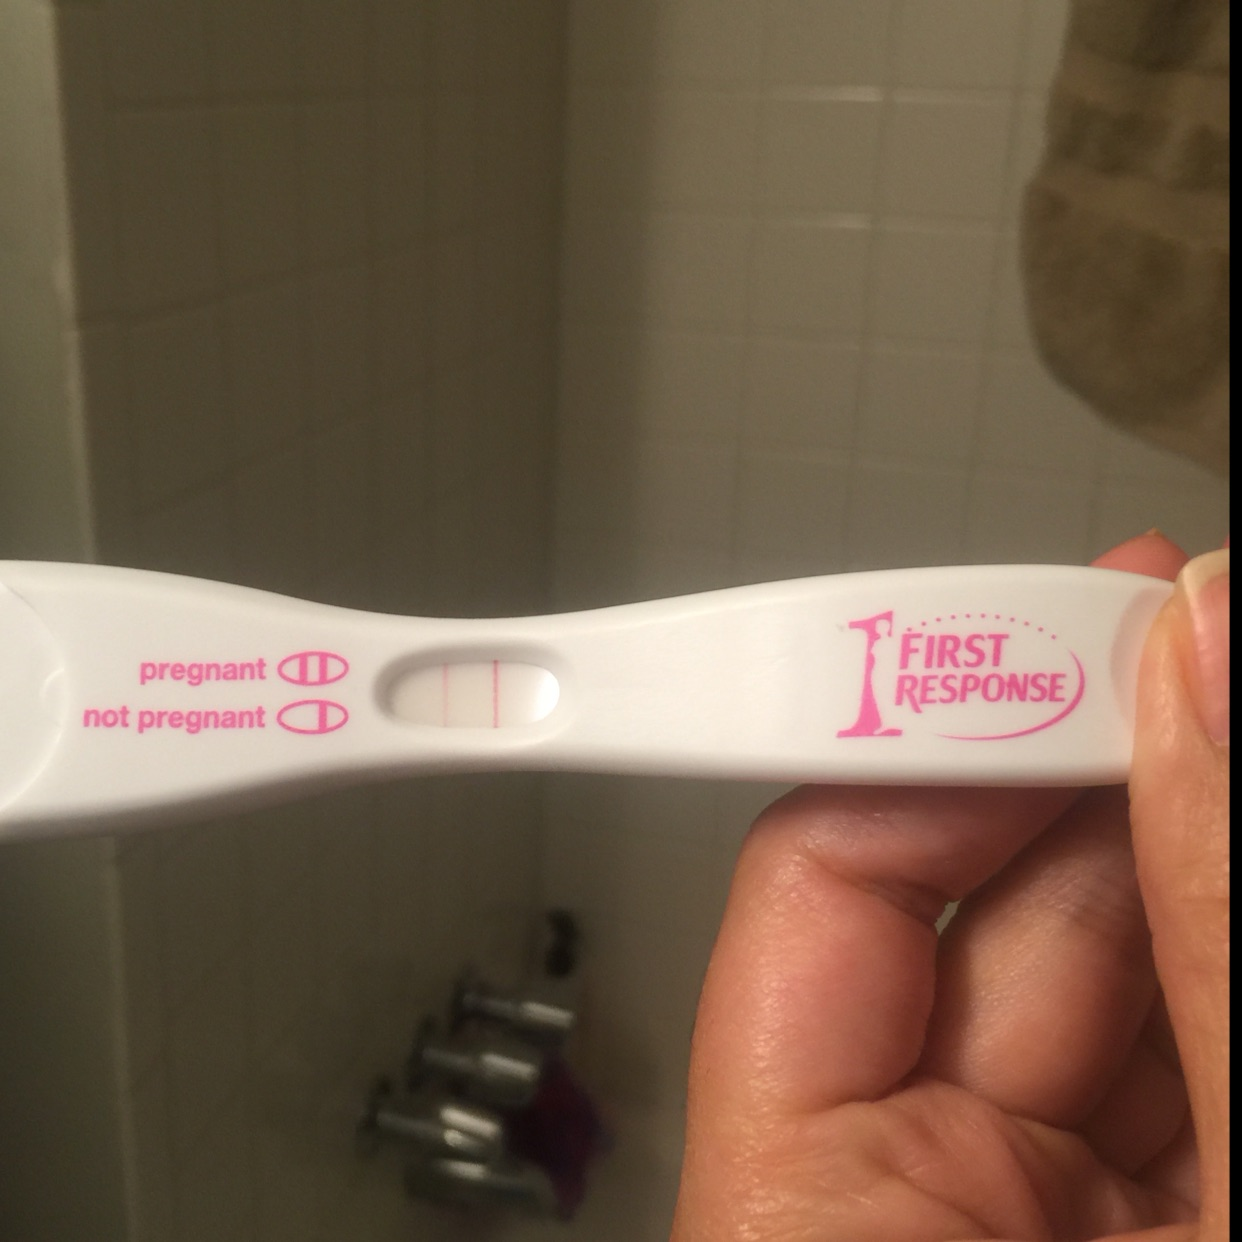 Period Is Late By 2 Days This Is The Test I Took On Day 1 Of Missed Period Using First Response Early Pregnancy Test Ran Out And Got Clear Blue Plus